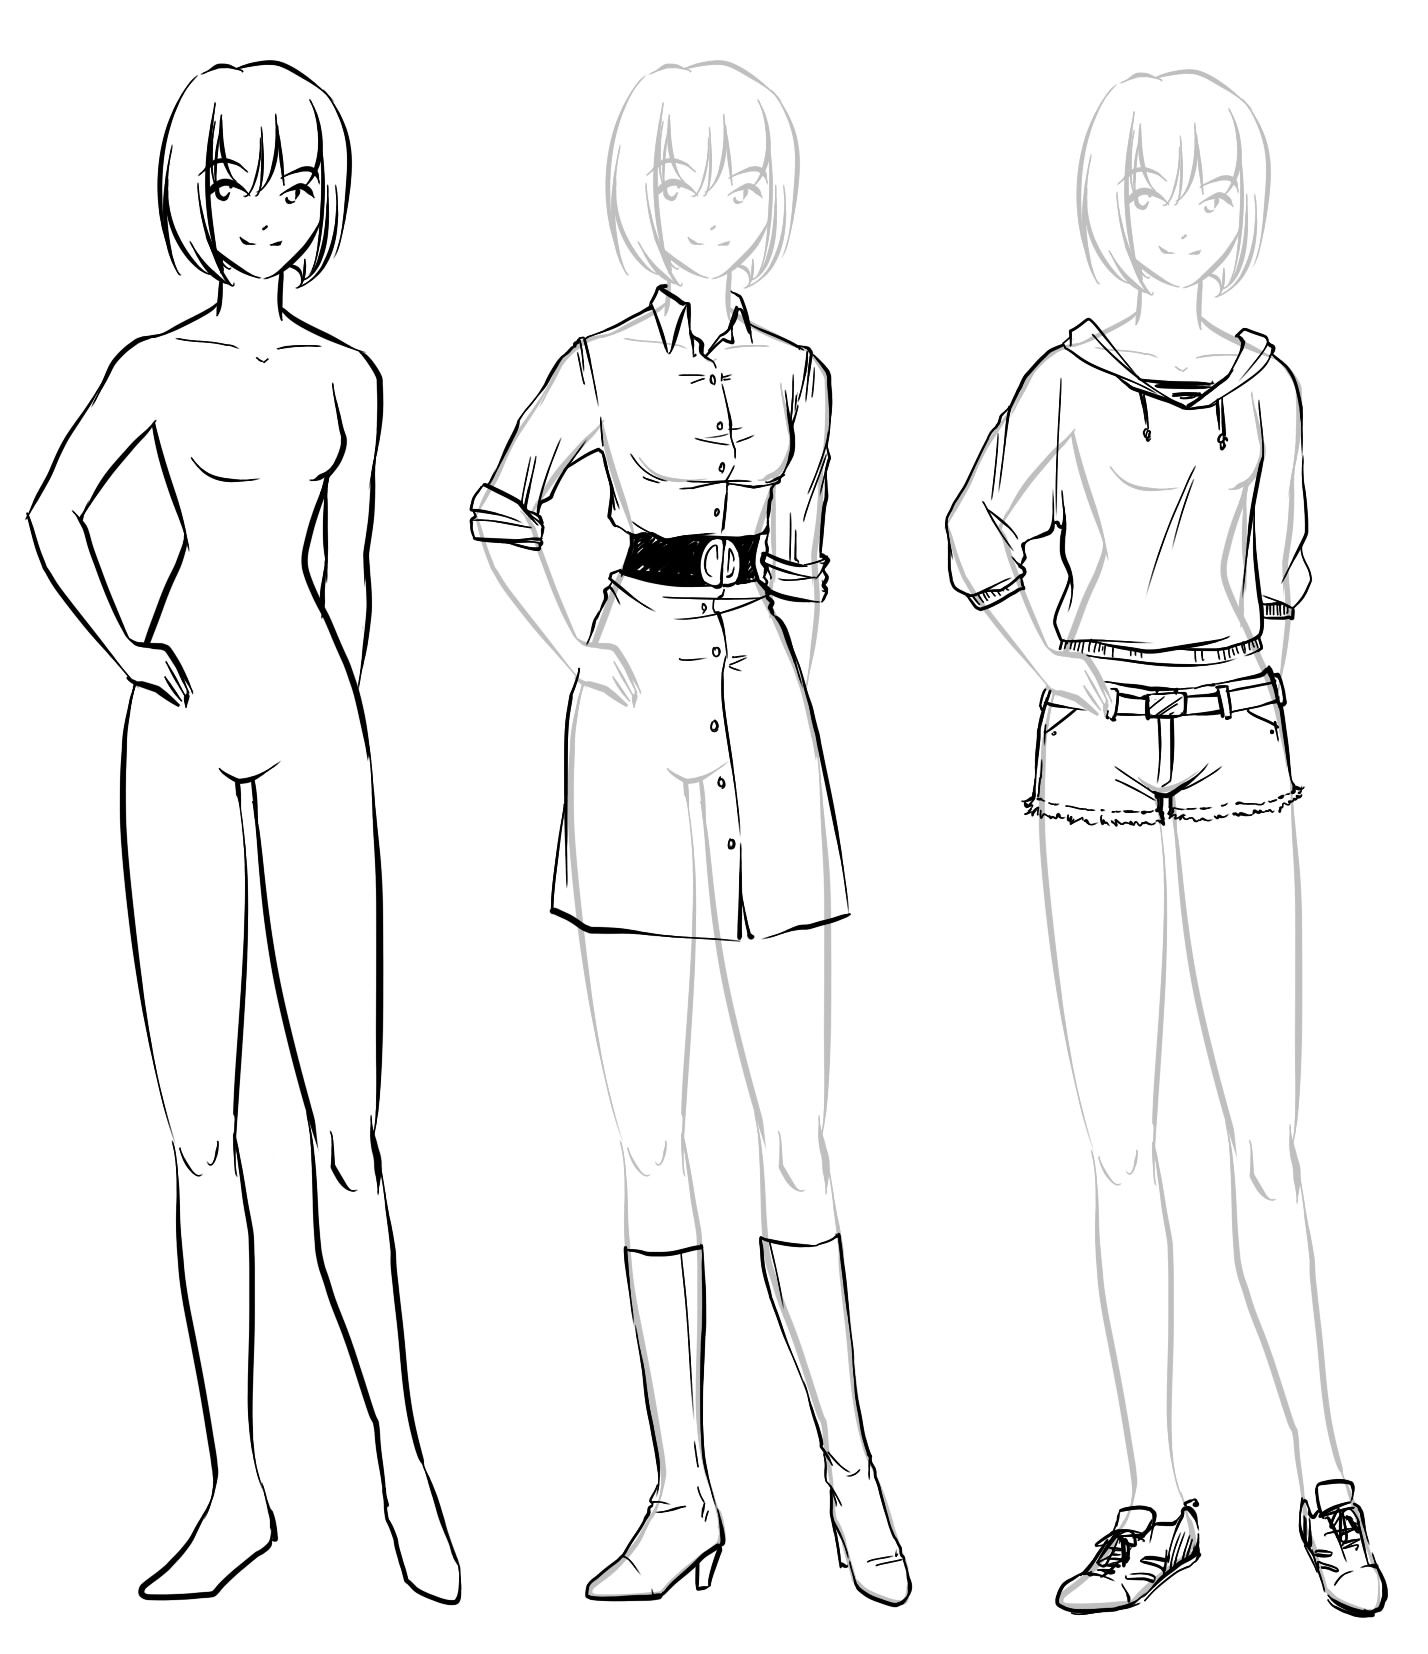 30+ Trends Ideas Anime Girl Full Body Drawing With Clothes